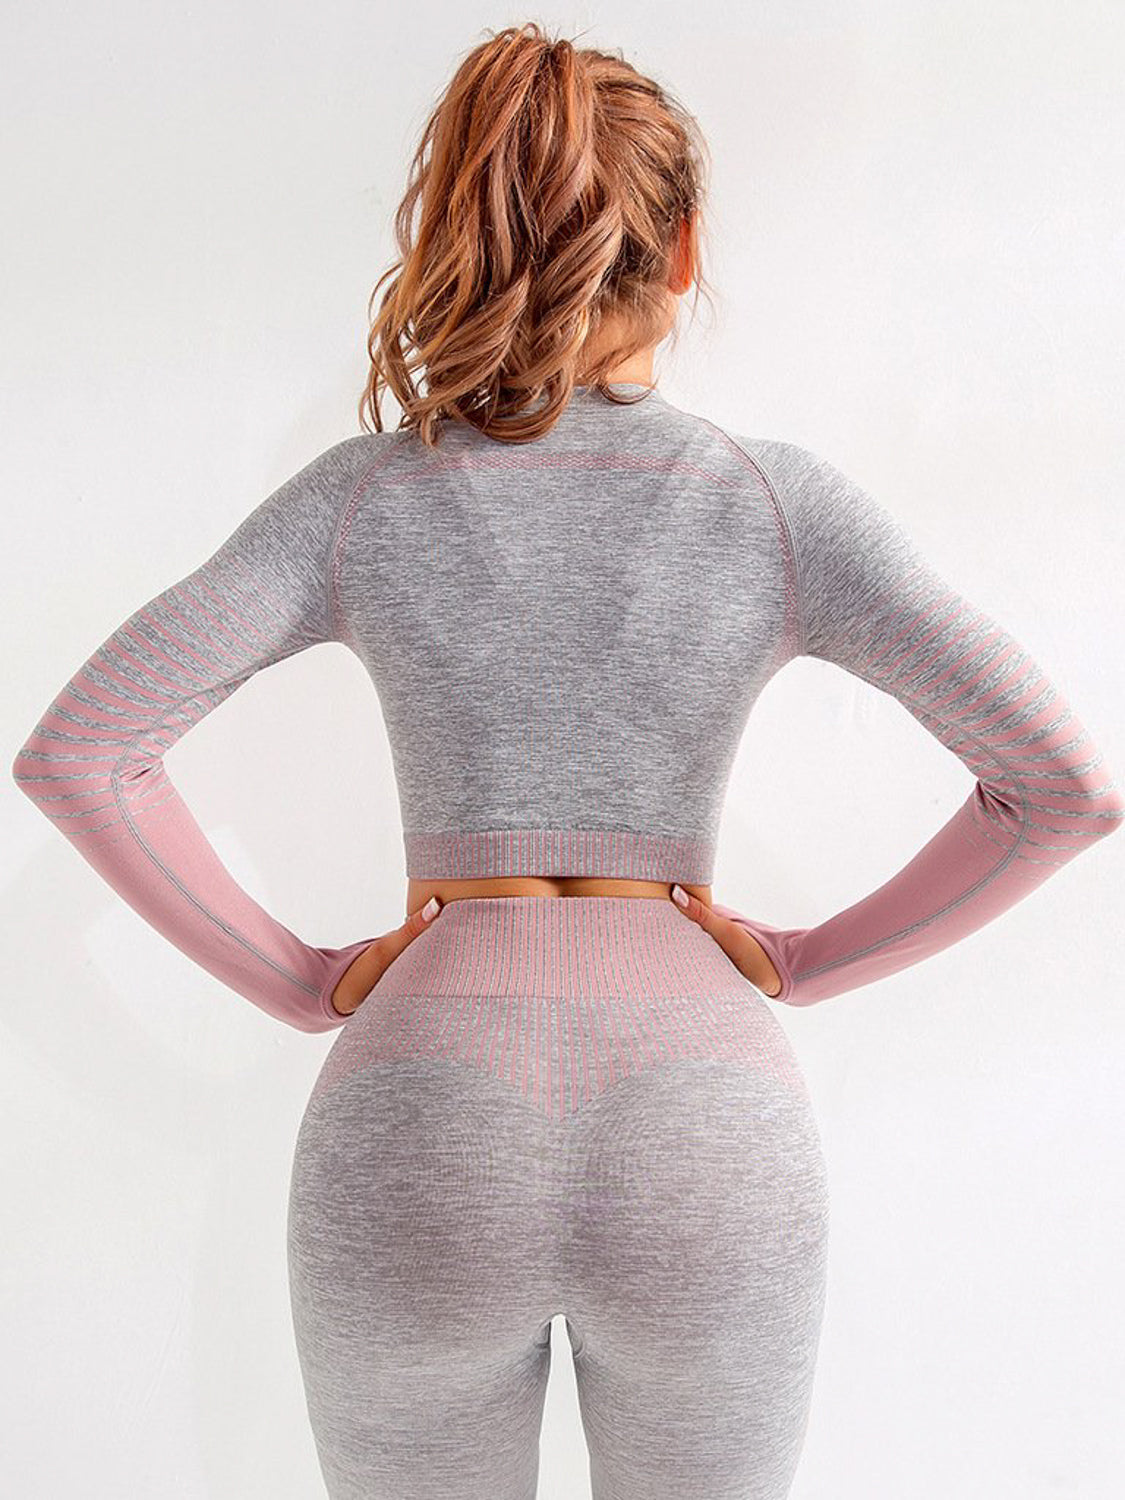 MOVI Rise Sleeved Crop - Grey Pink